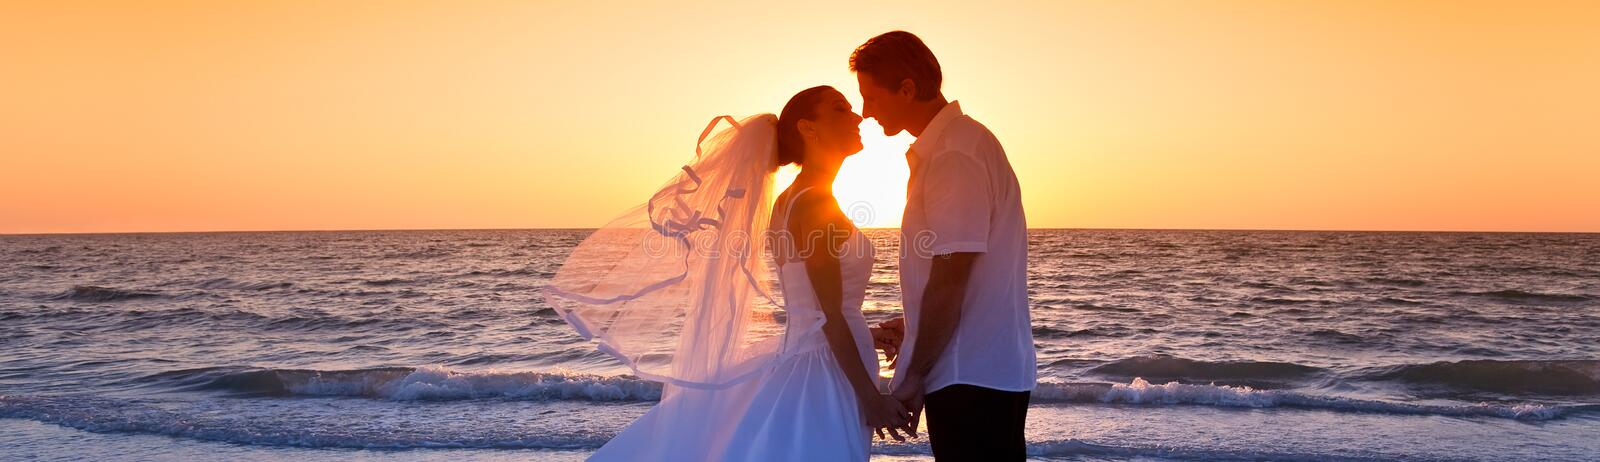 Bride and Groom Married Couple Kissing Sunset Beach Wedding royalty free stock image